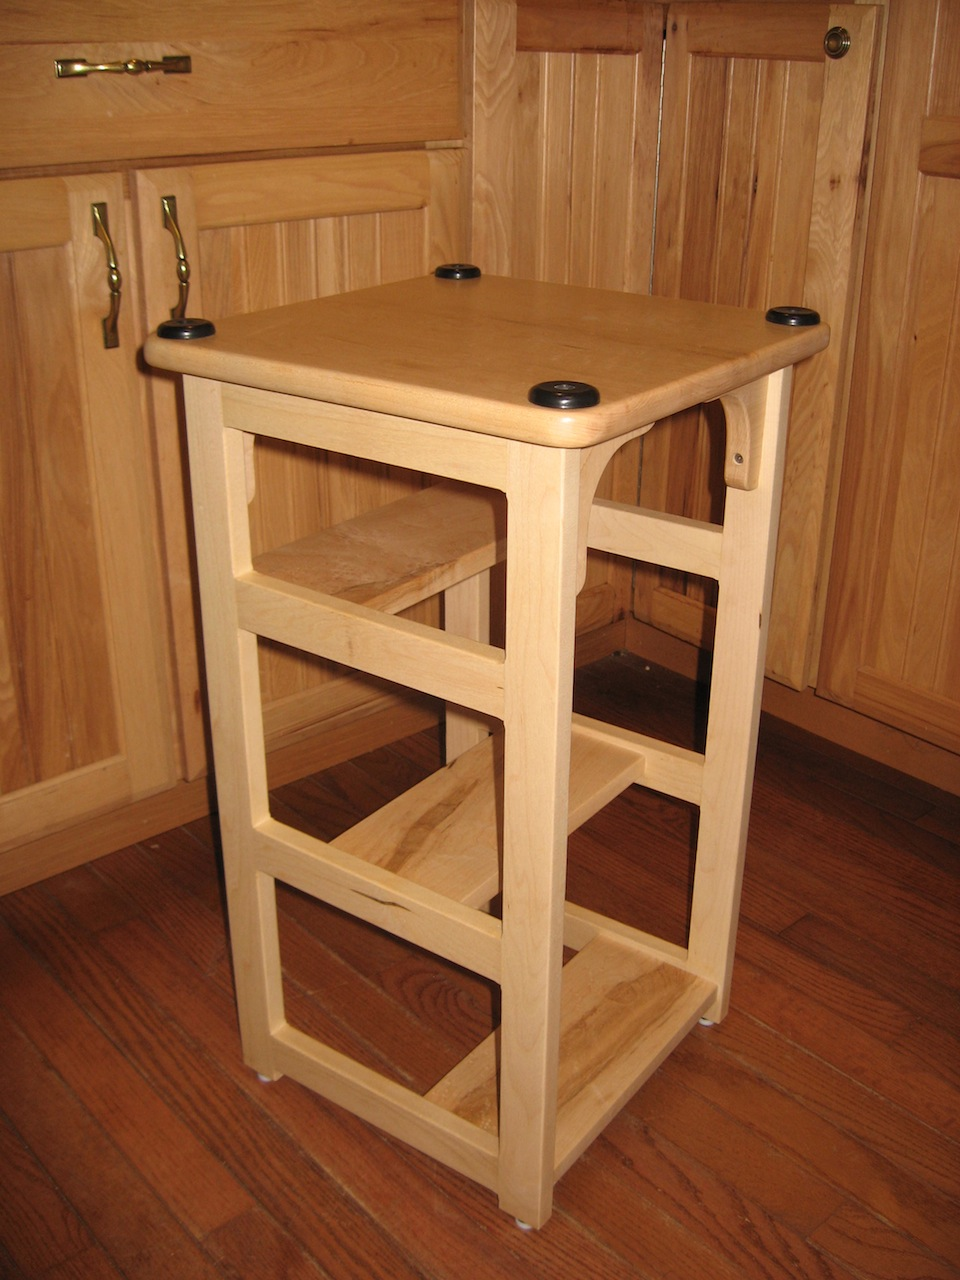 Fabulous Stans Hoosier Step Stool The Wood Whisperer Alphanode Cool Chair Designs And Ideas Alphanodeonline